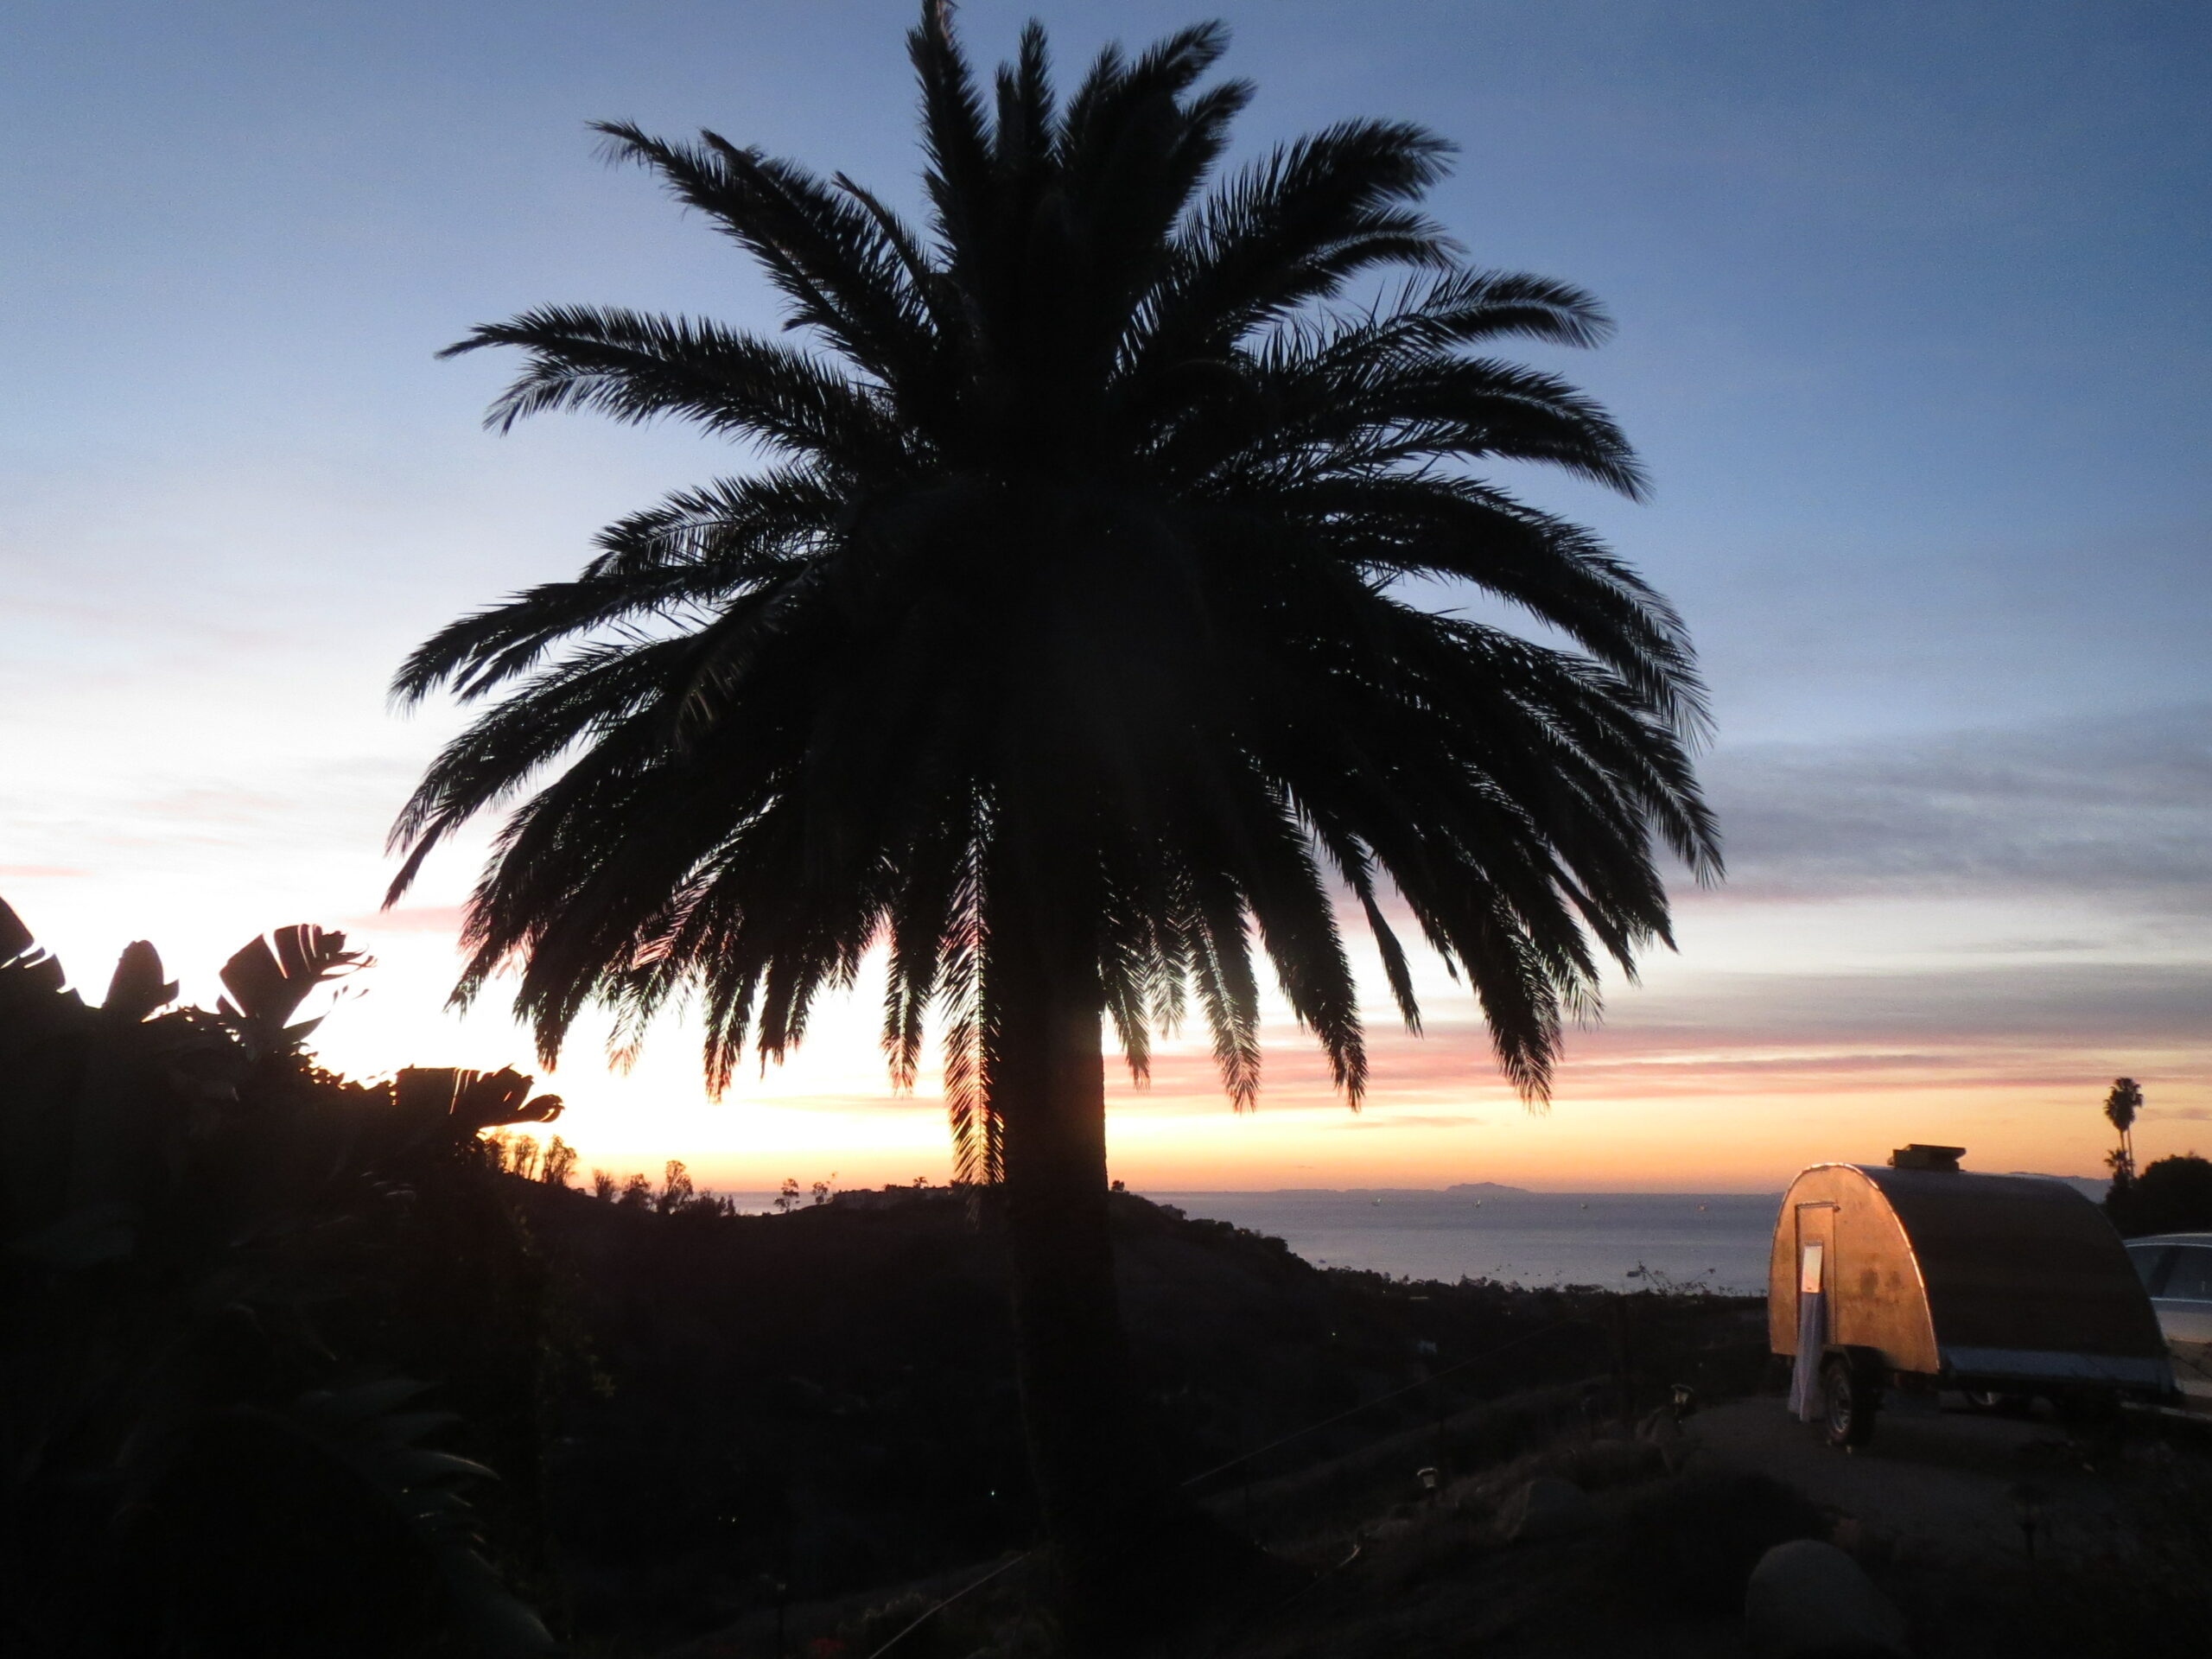 Palm tree and camper at sunset.